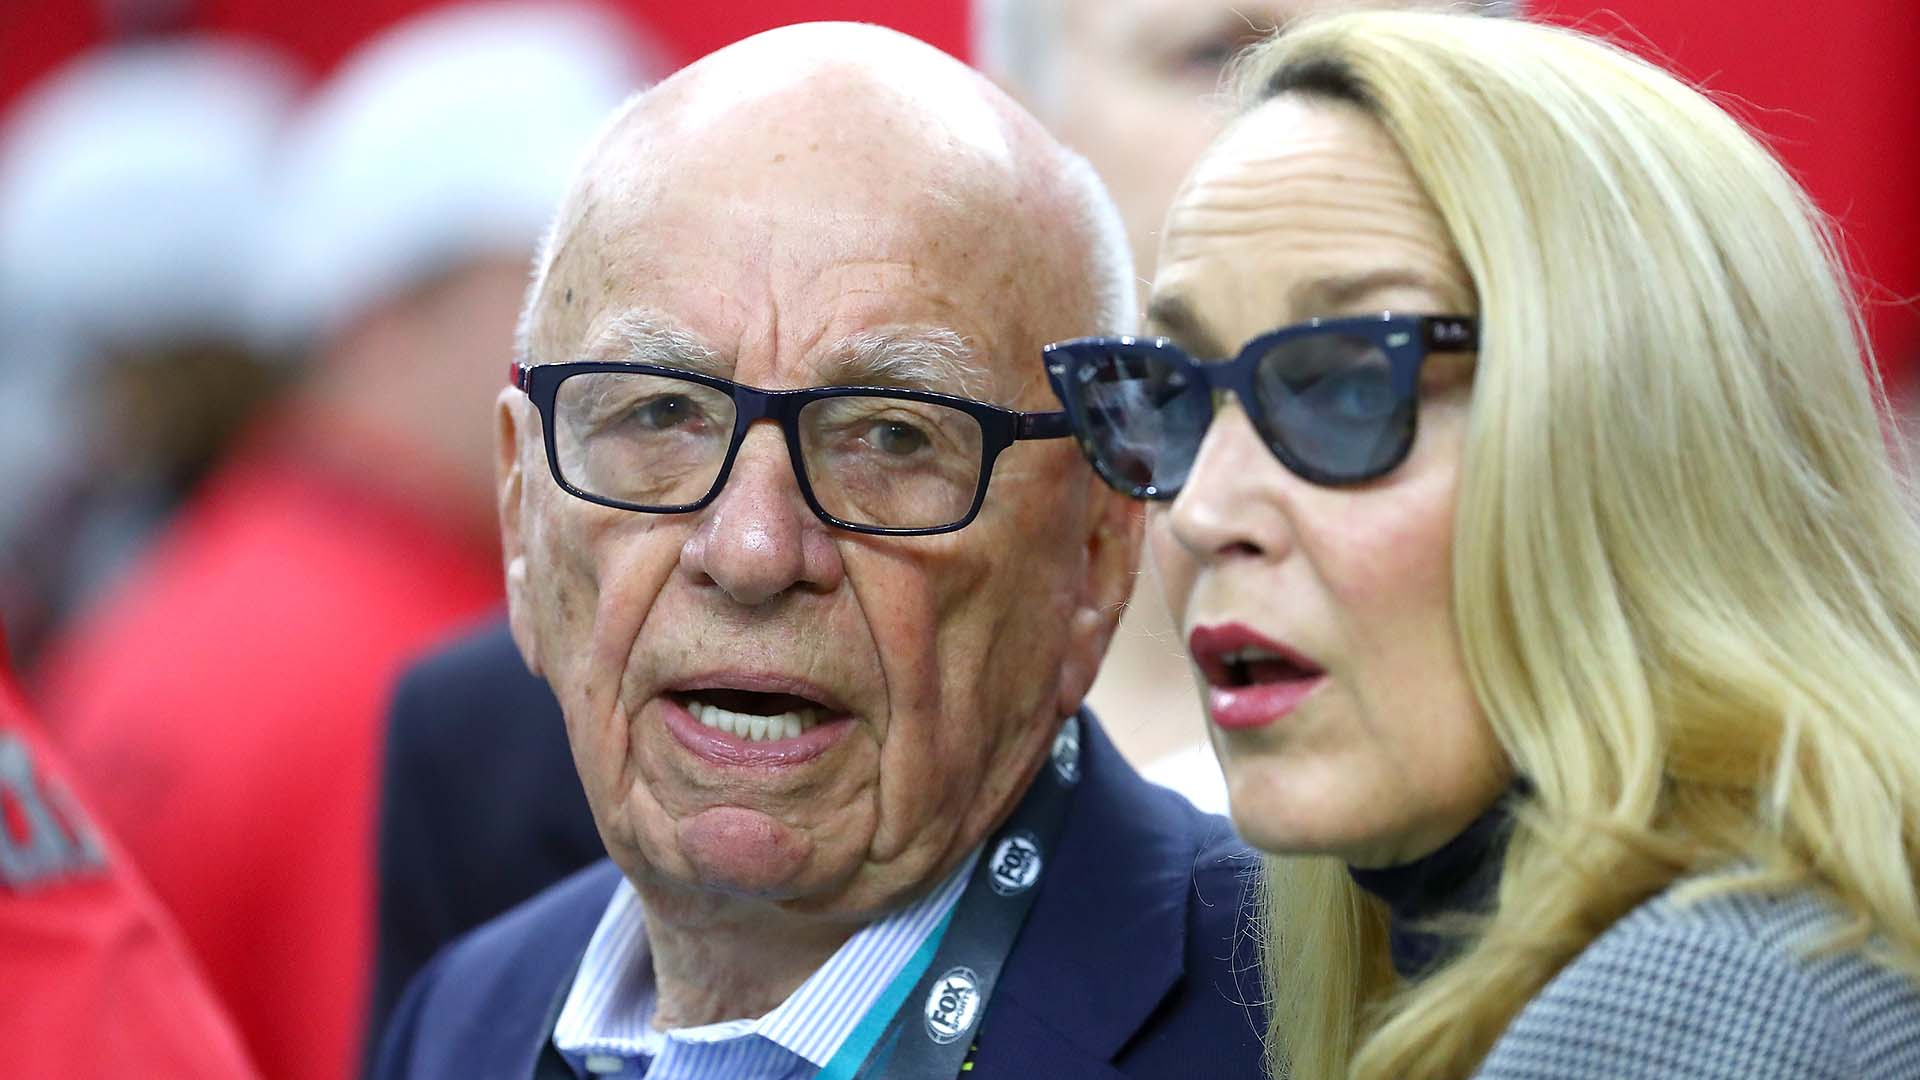 Comcast Challenges Fox's Rupert Murdoch With US $31 Billion Bid for Sky